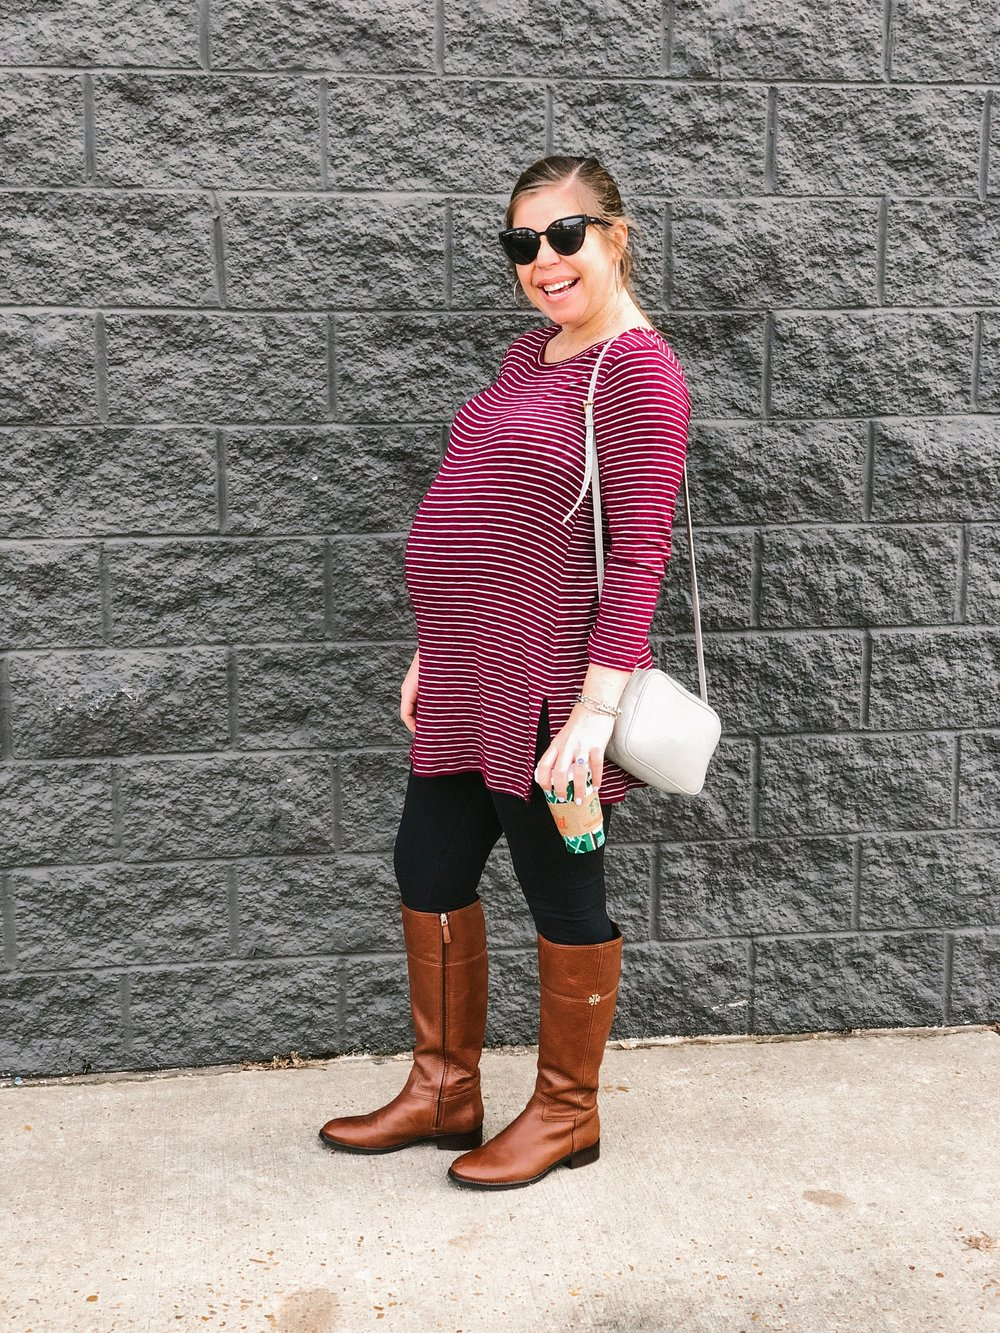 Outfit Details-     tunic     |     leggings     |     boots     |     purse